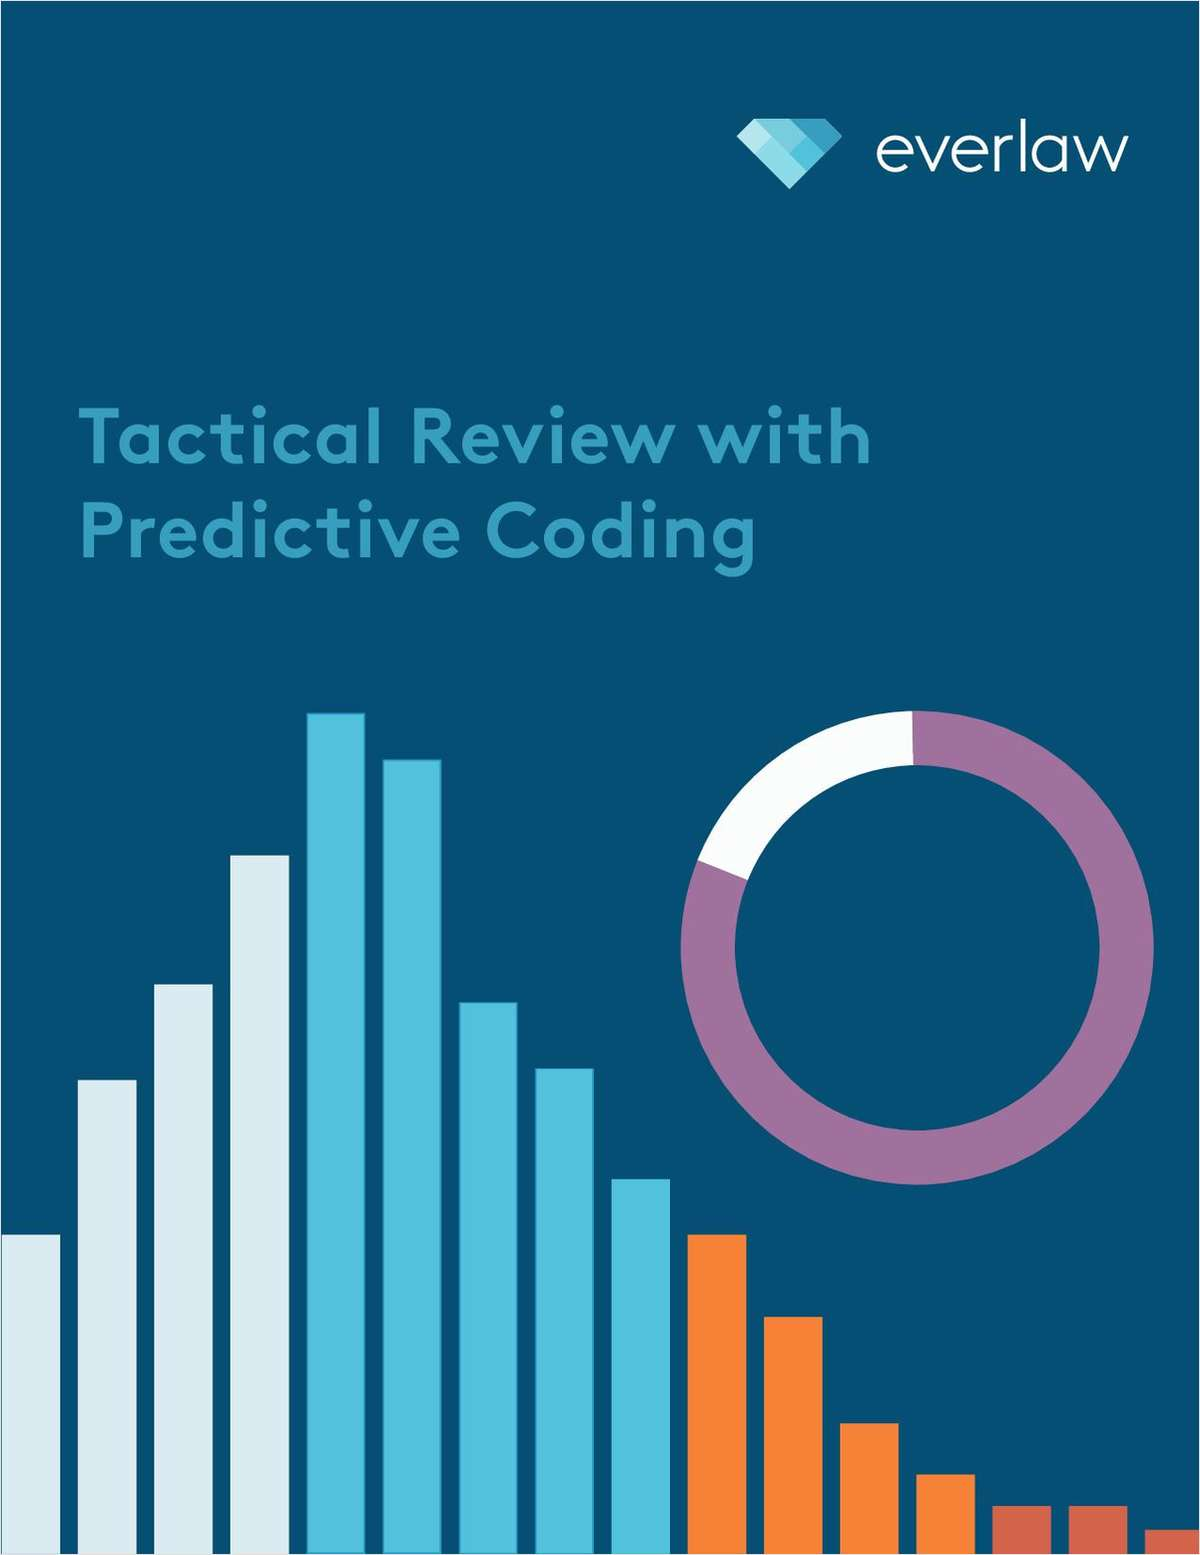 How Predictive Coding Enables Tactical Review in eDiscovery